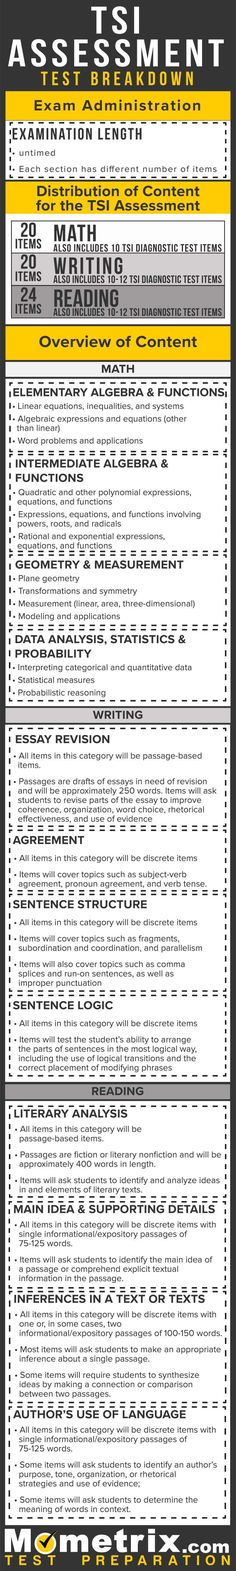 20 best tsi study guide images on pinterest this or that questions rh pinterest com tsi assesment study guide tsi assessment study guide book